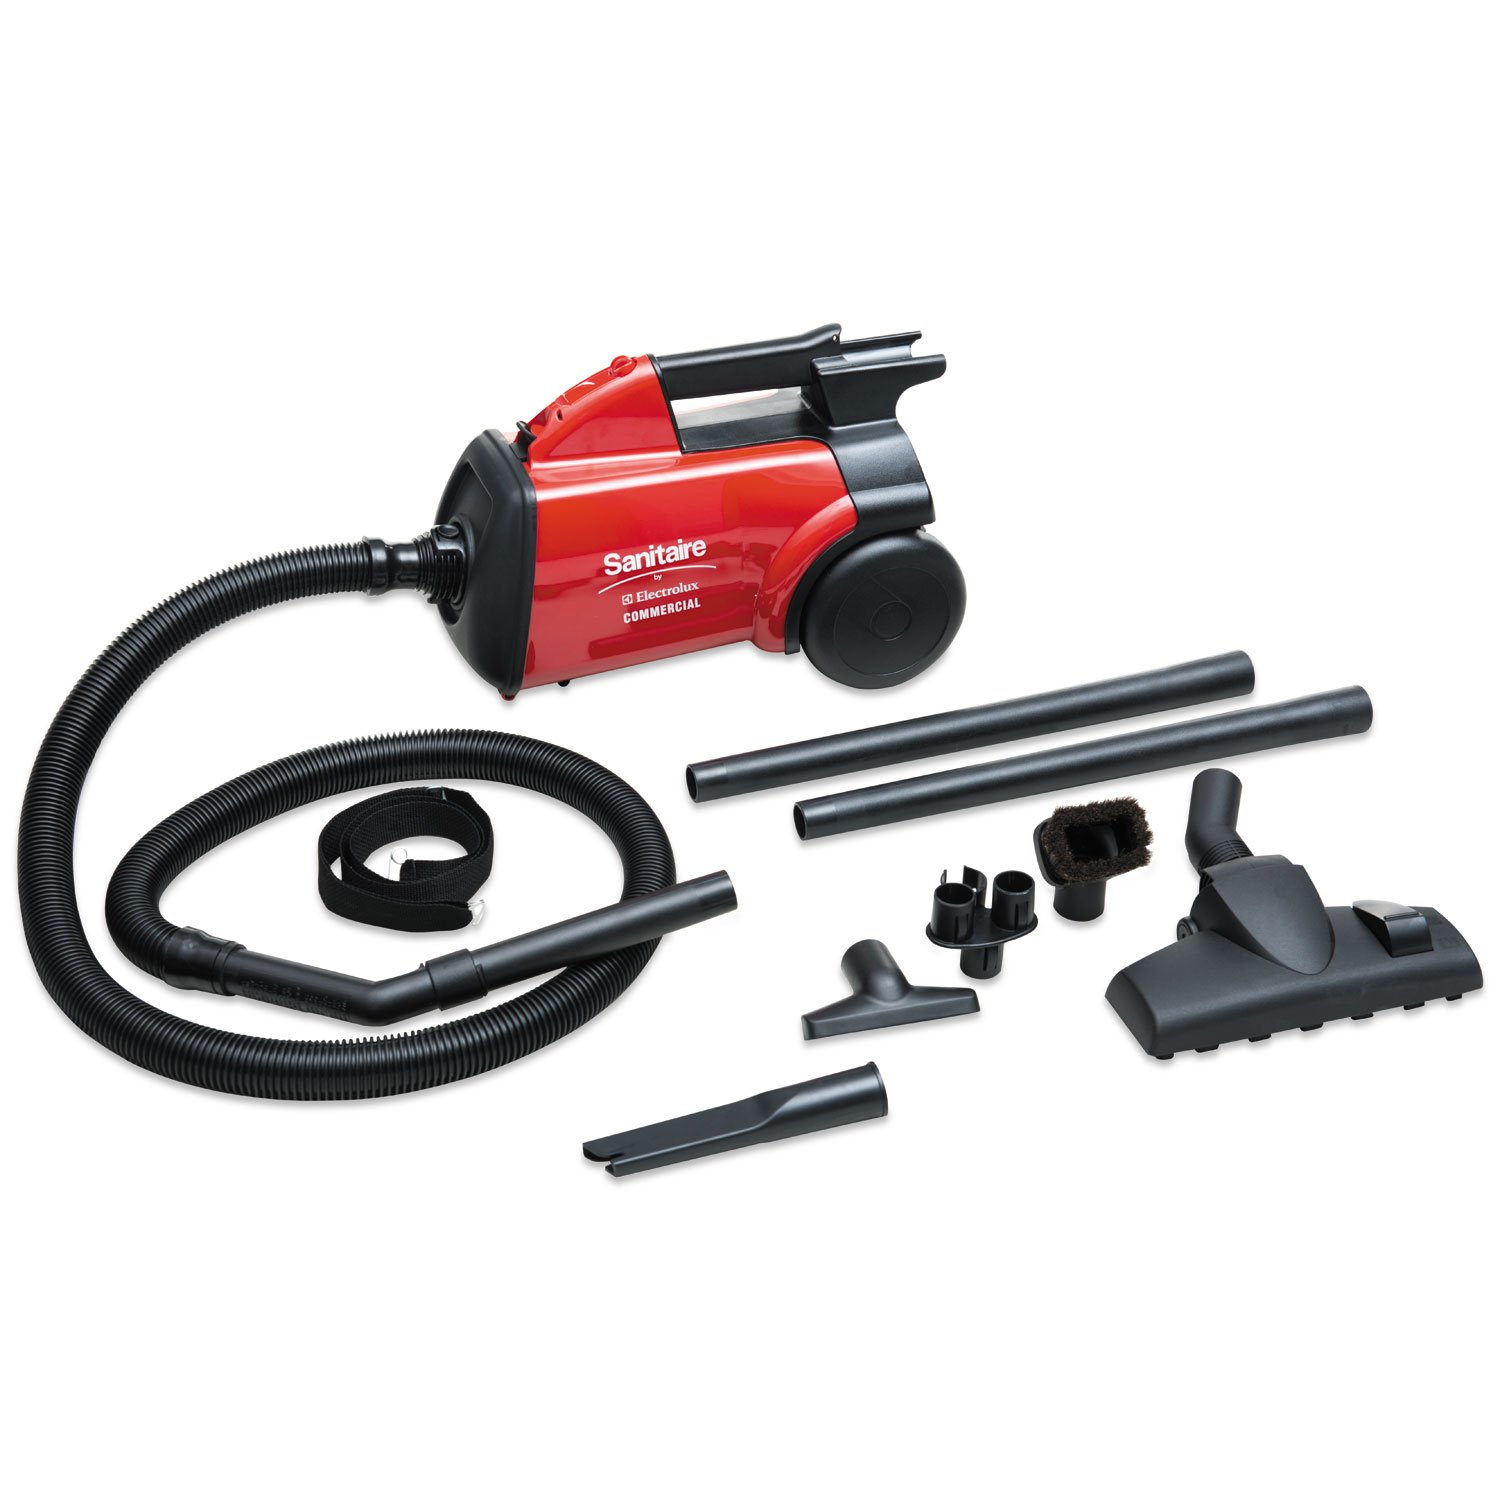 Sanitaire SC3683B Commercial Compact Canister Vacuum, 10lb, Red